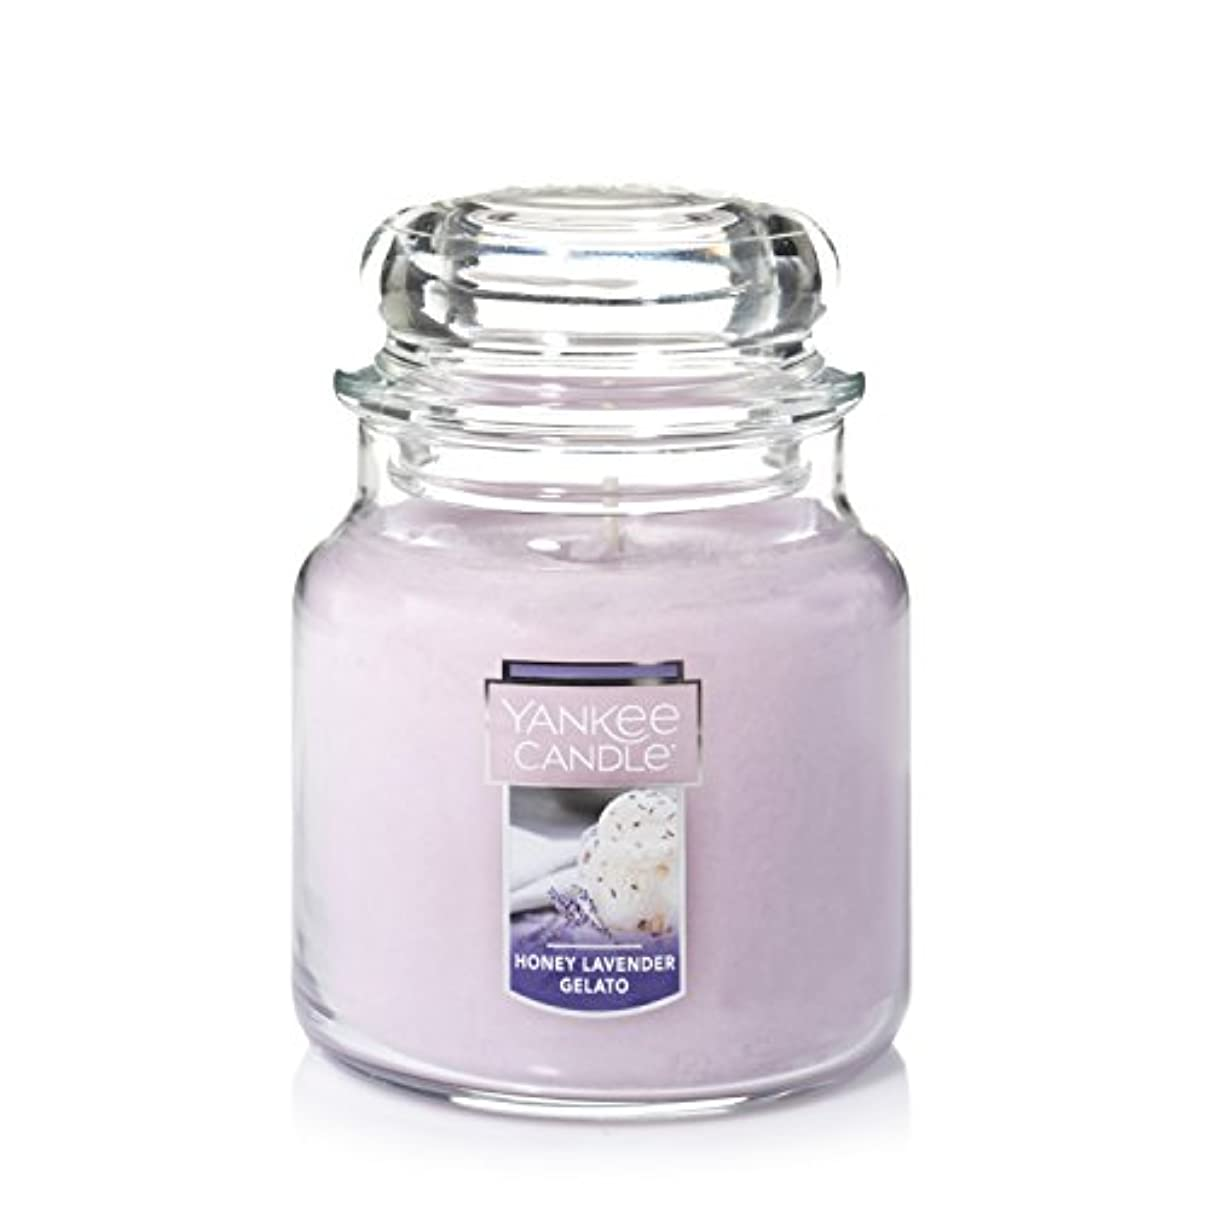 有効金曜日下着Yankee Candle HoneyラベンダーGelato Medium Jar Candle パープル 1521685Z